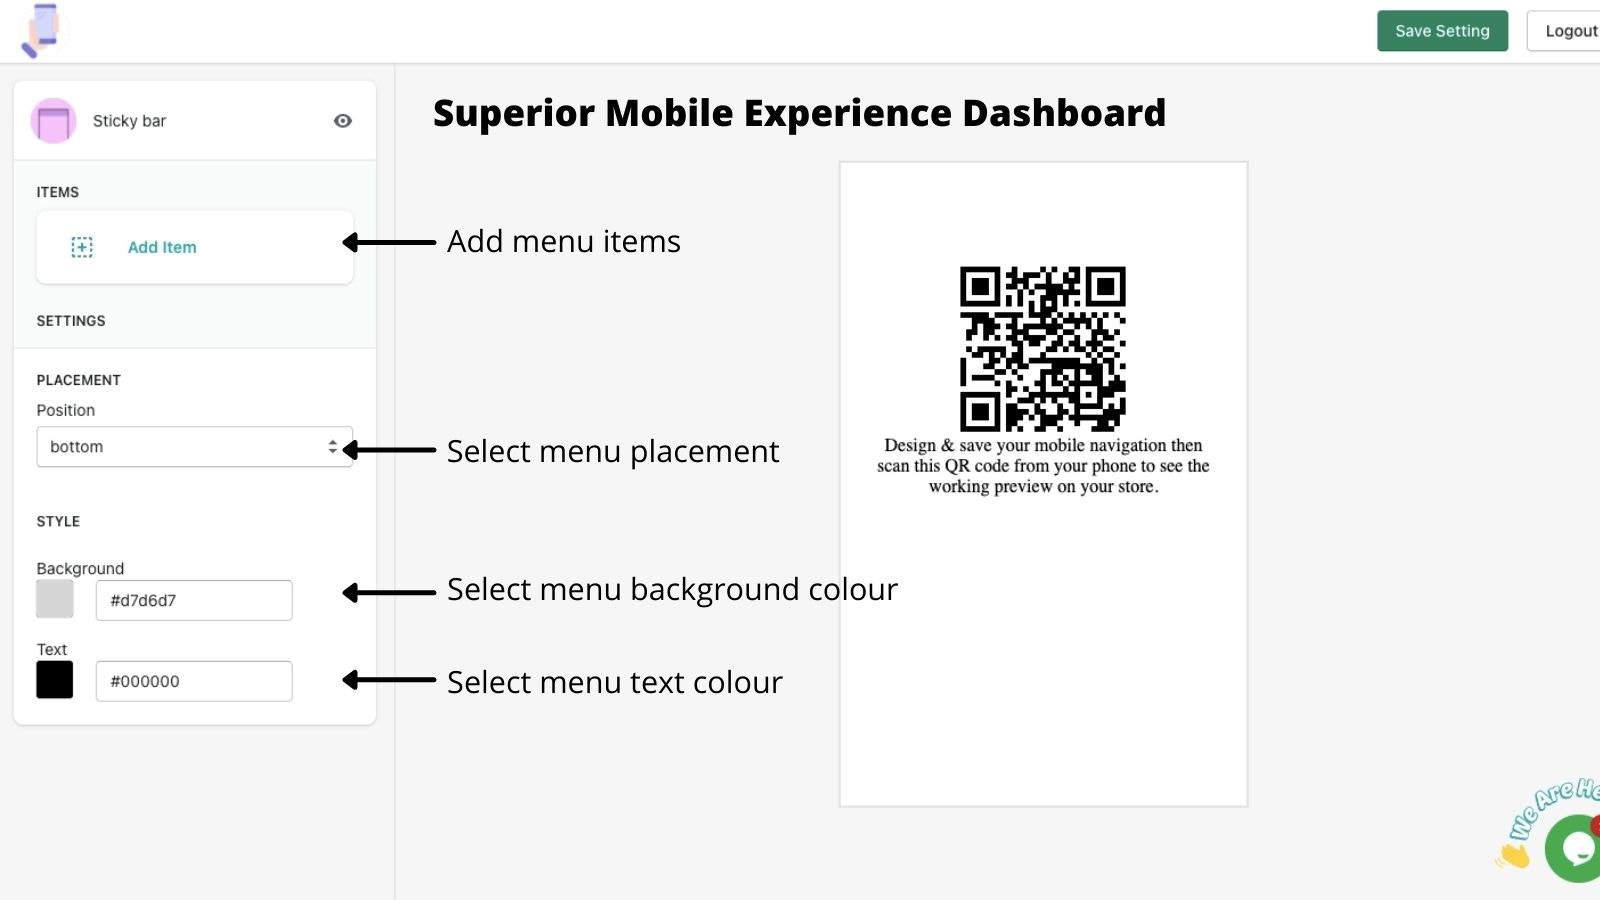 Superior Mobile Experience